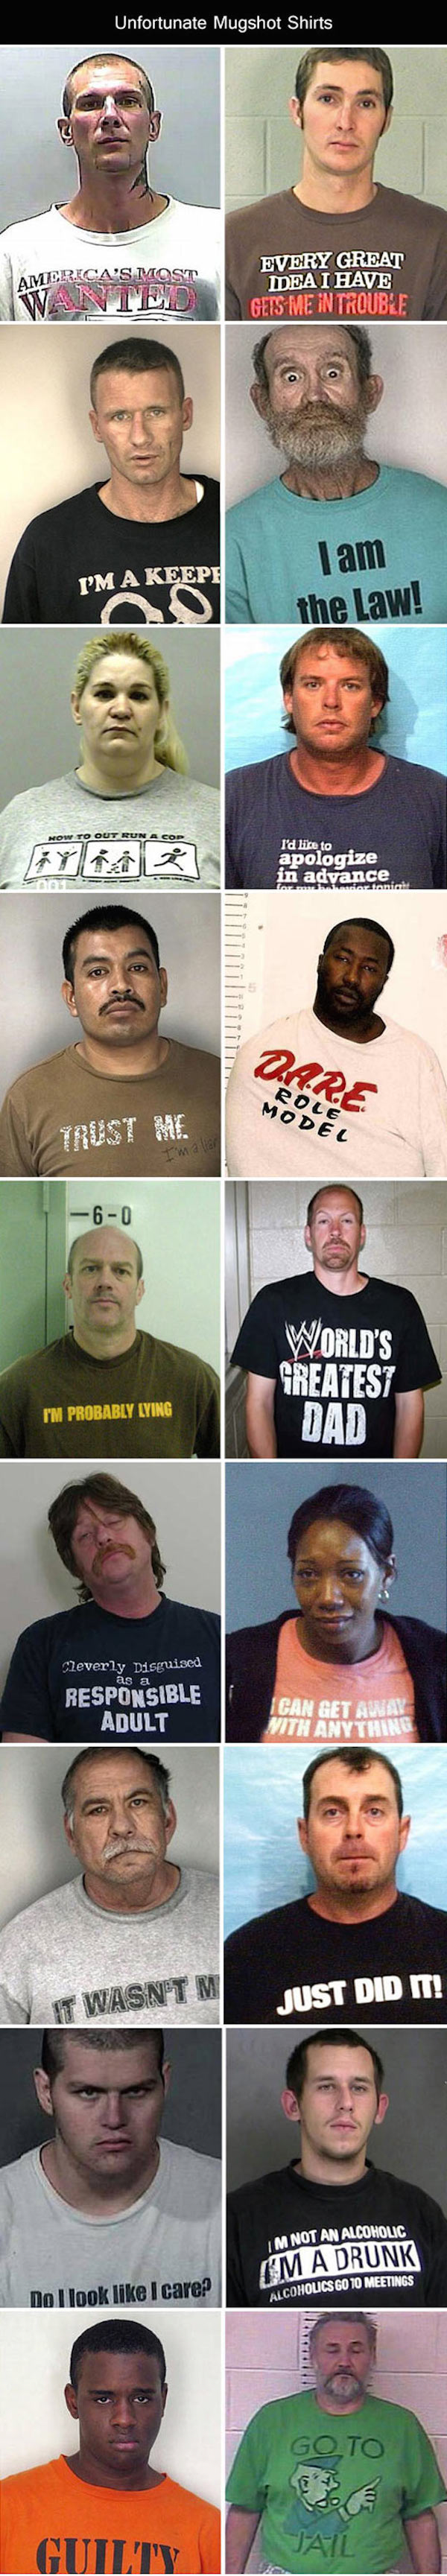 unfortunate mugshot shirts, unfortunate mugshots, mug shot, mug shots, funny mugshots, funny mugshot, funny mugshots website, funny mugshots and charges, funny mugshots 2012, funny mugshots tumblr, funny mugshots shirts, funny mugshots gallery, funny mugshots with captions, worst mugshots, worst mugshots of 2014, worst mugshots 2015, worst mugshots 2016, mugshots 2016, mug shots 2016, worst mugshots 2017, mugshots 2017, worst mugshots of all time, worlds best mug shots, worst female mugshots, creepy mugshots, best mugshots ever, craziest mugshots, best mugshots of all time, best mugshots 2015, best mugshots of 2014, best mugshots website